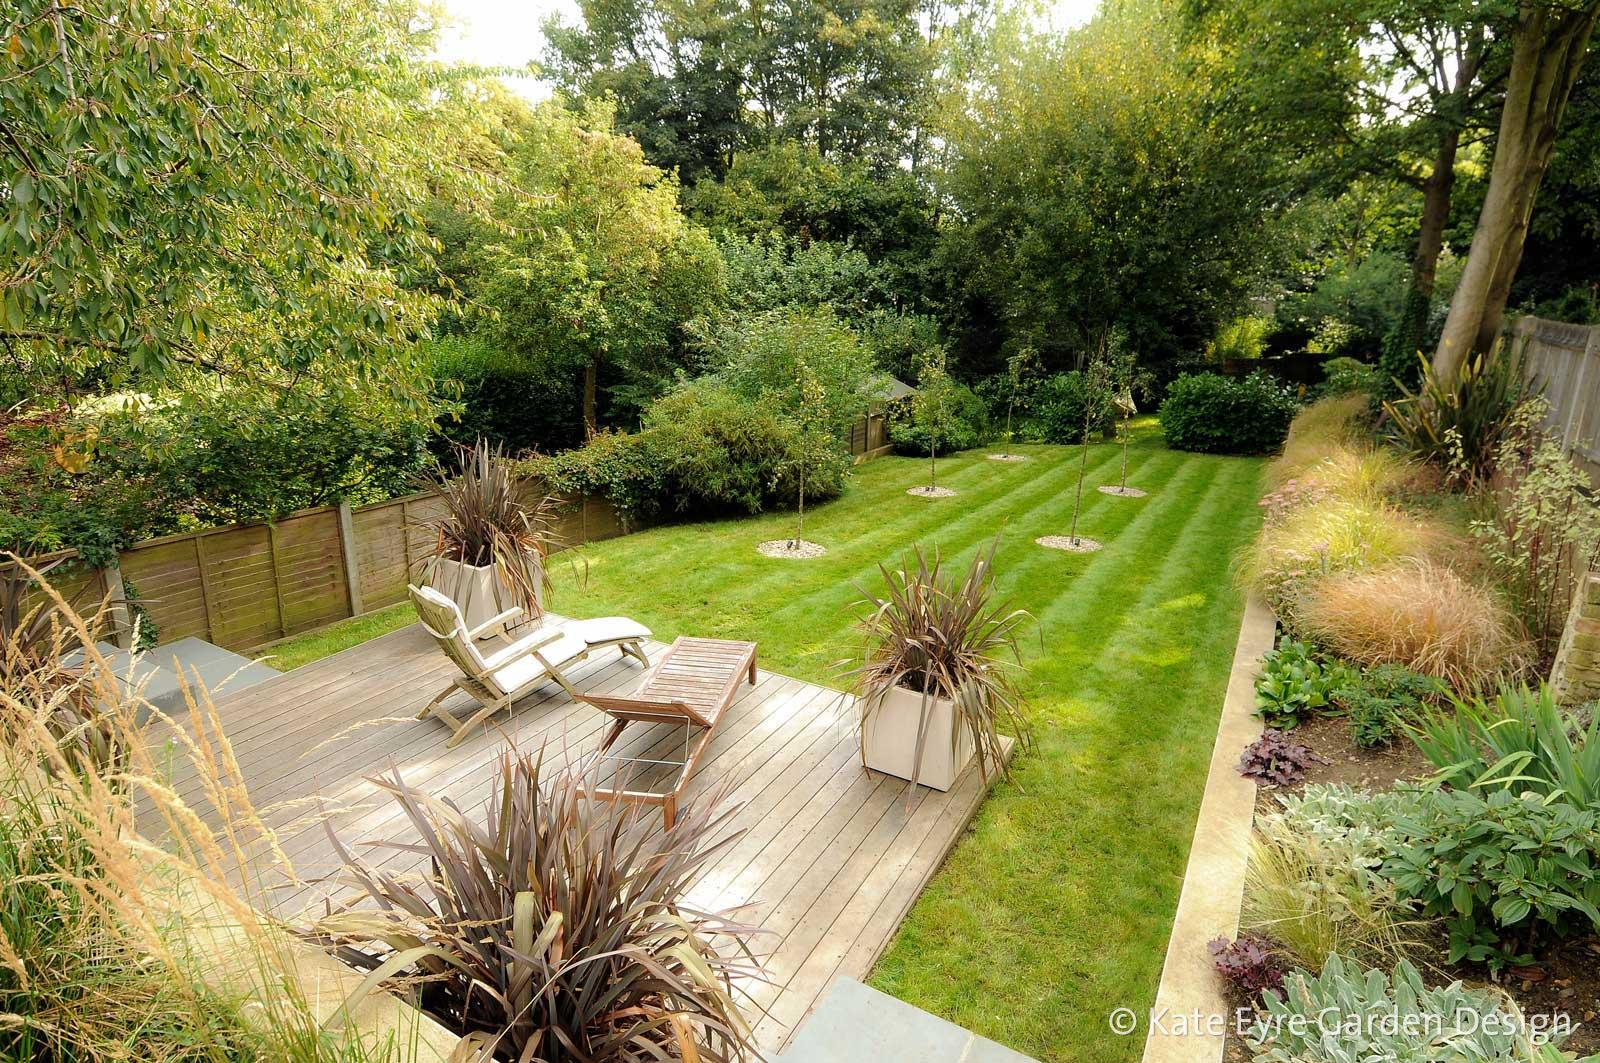 Garden design in crystal palace south east london for Design in garden